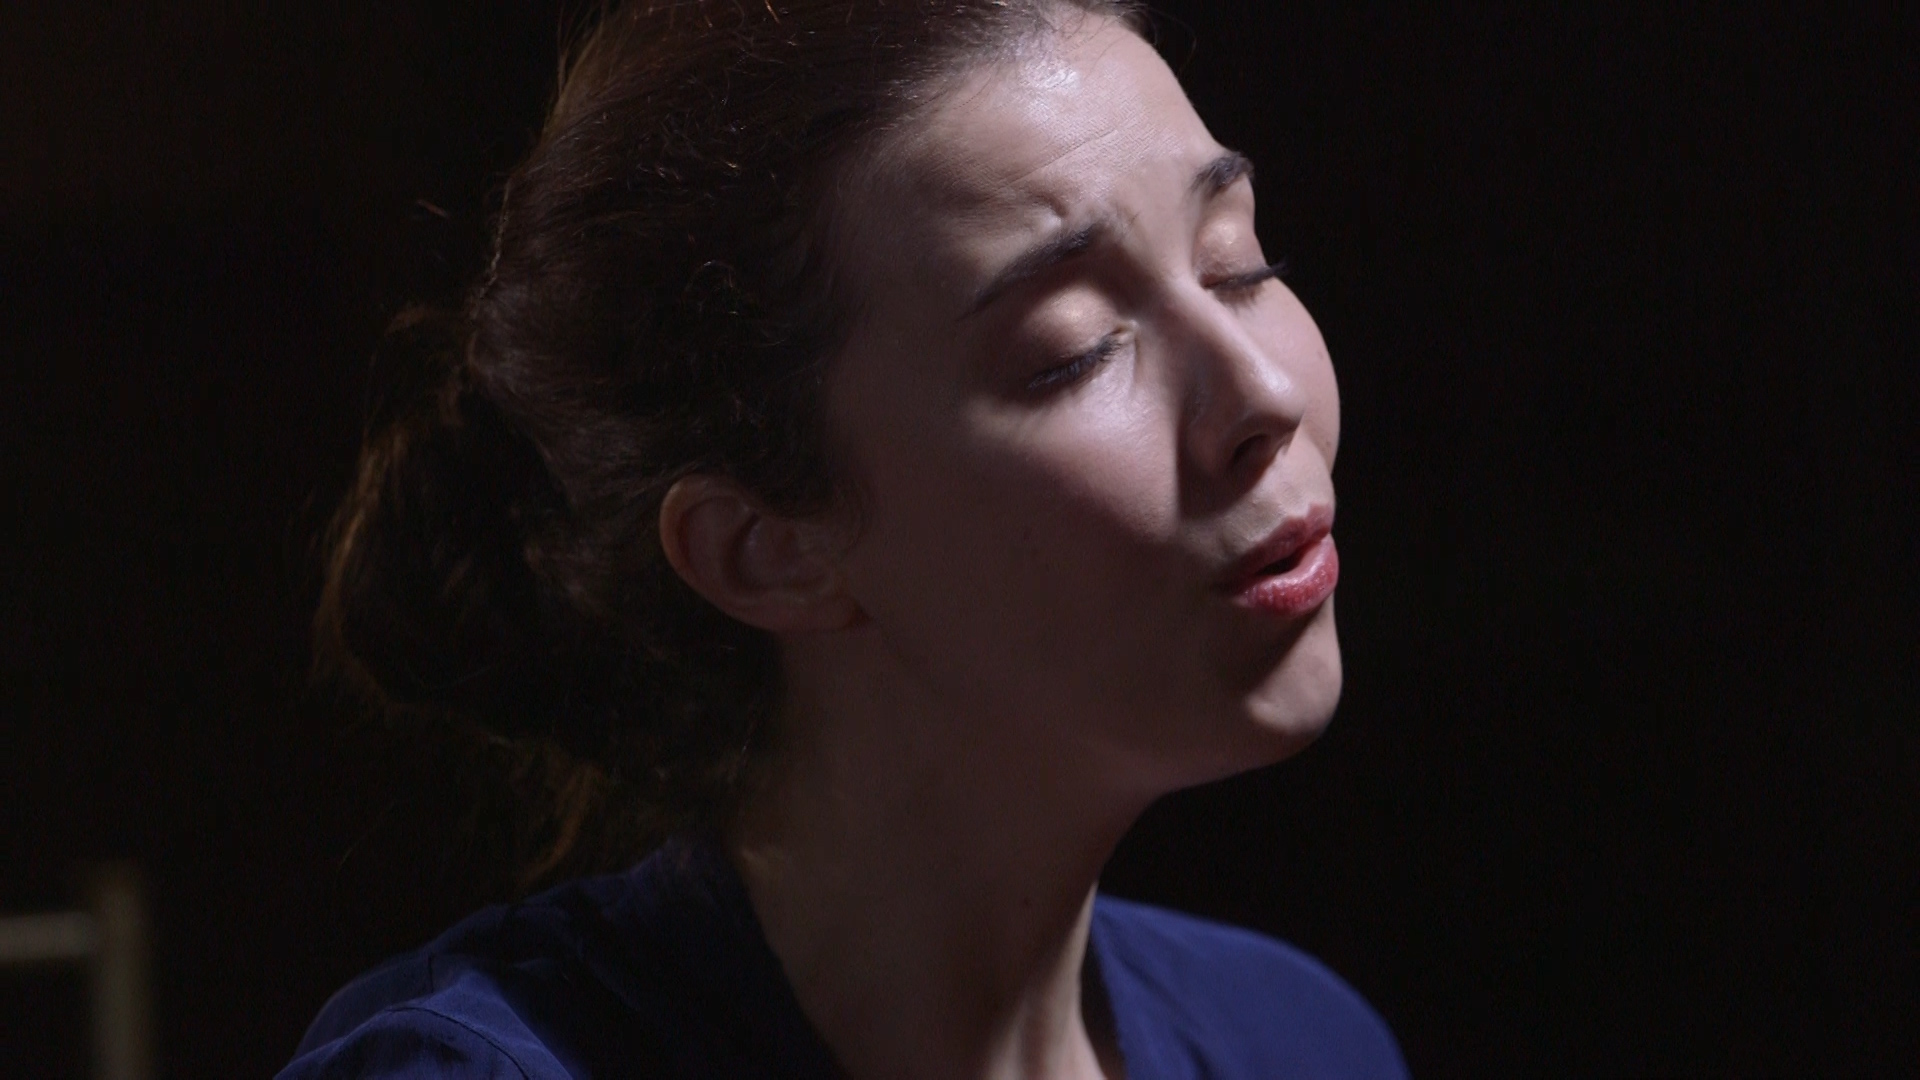 """Lisa Hannigan: Stalking the Muse - After a decade of non-stop creativity, Lisa Hannigan was forced to confront the dreaded """"blank page.""""Season 2, Episode 1Originally aired 3 October 2017"""